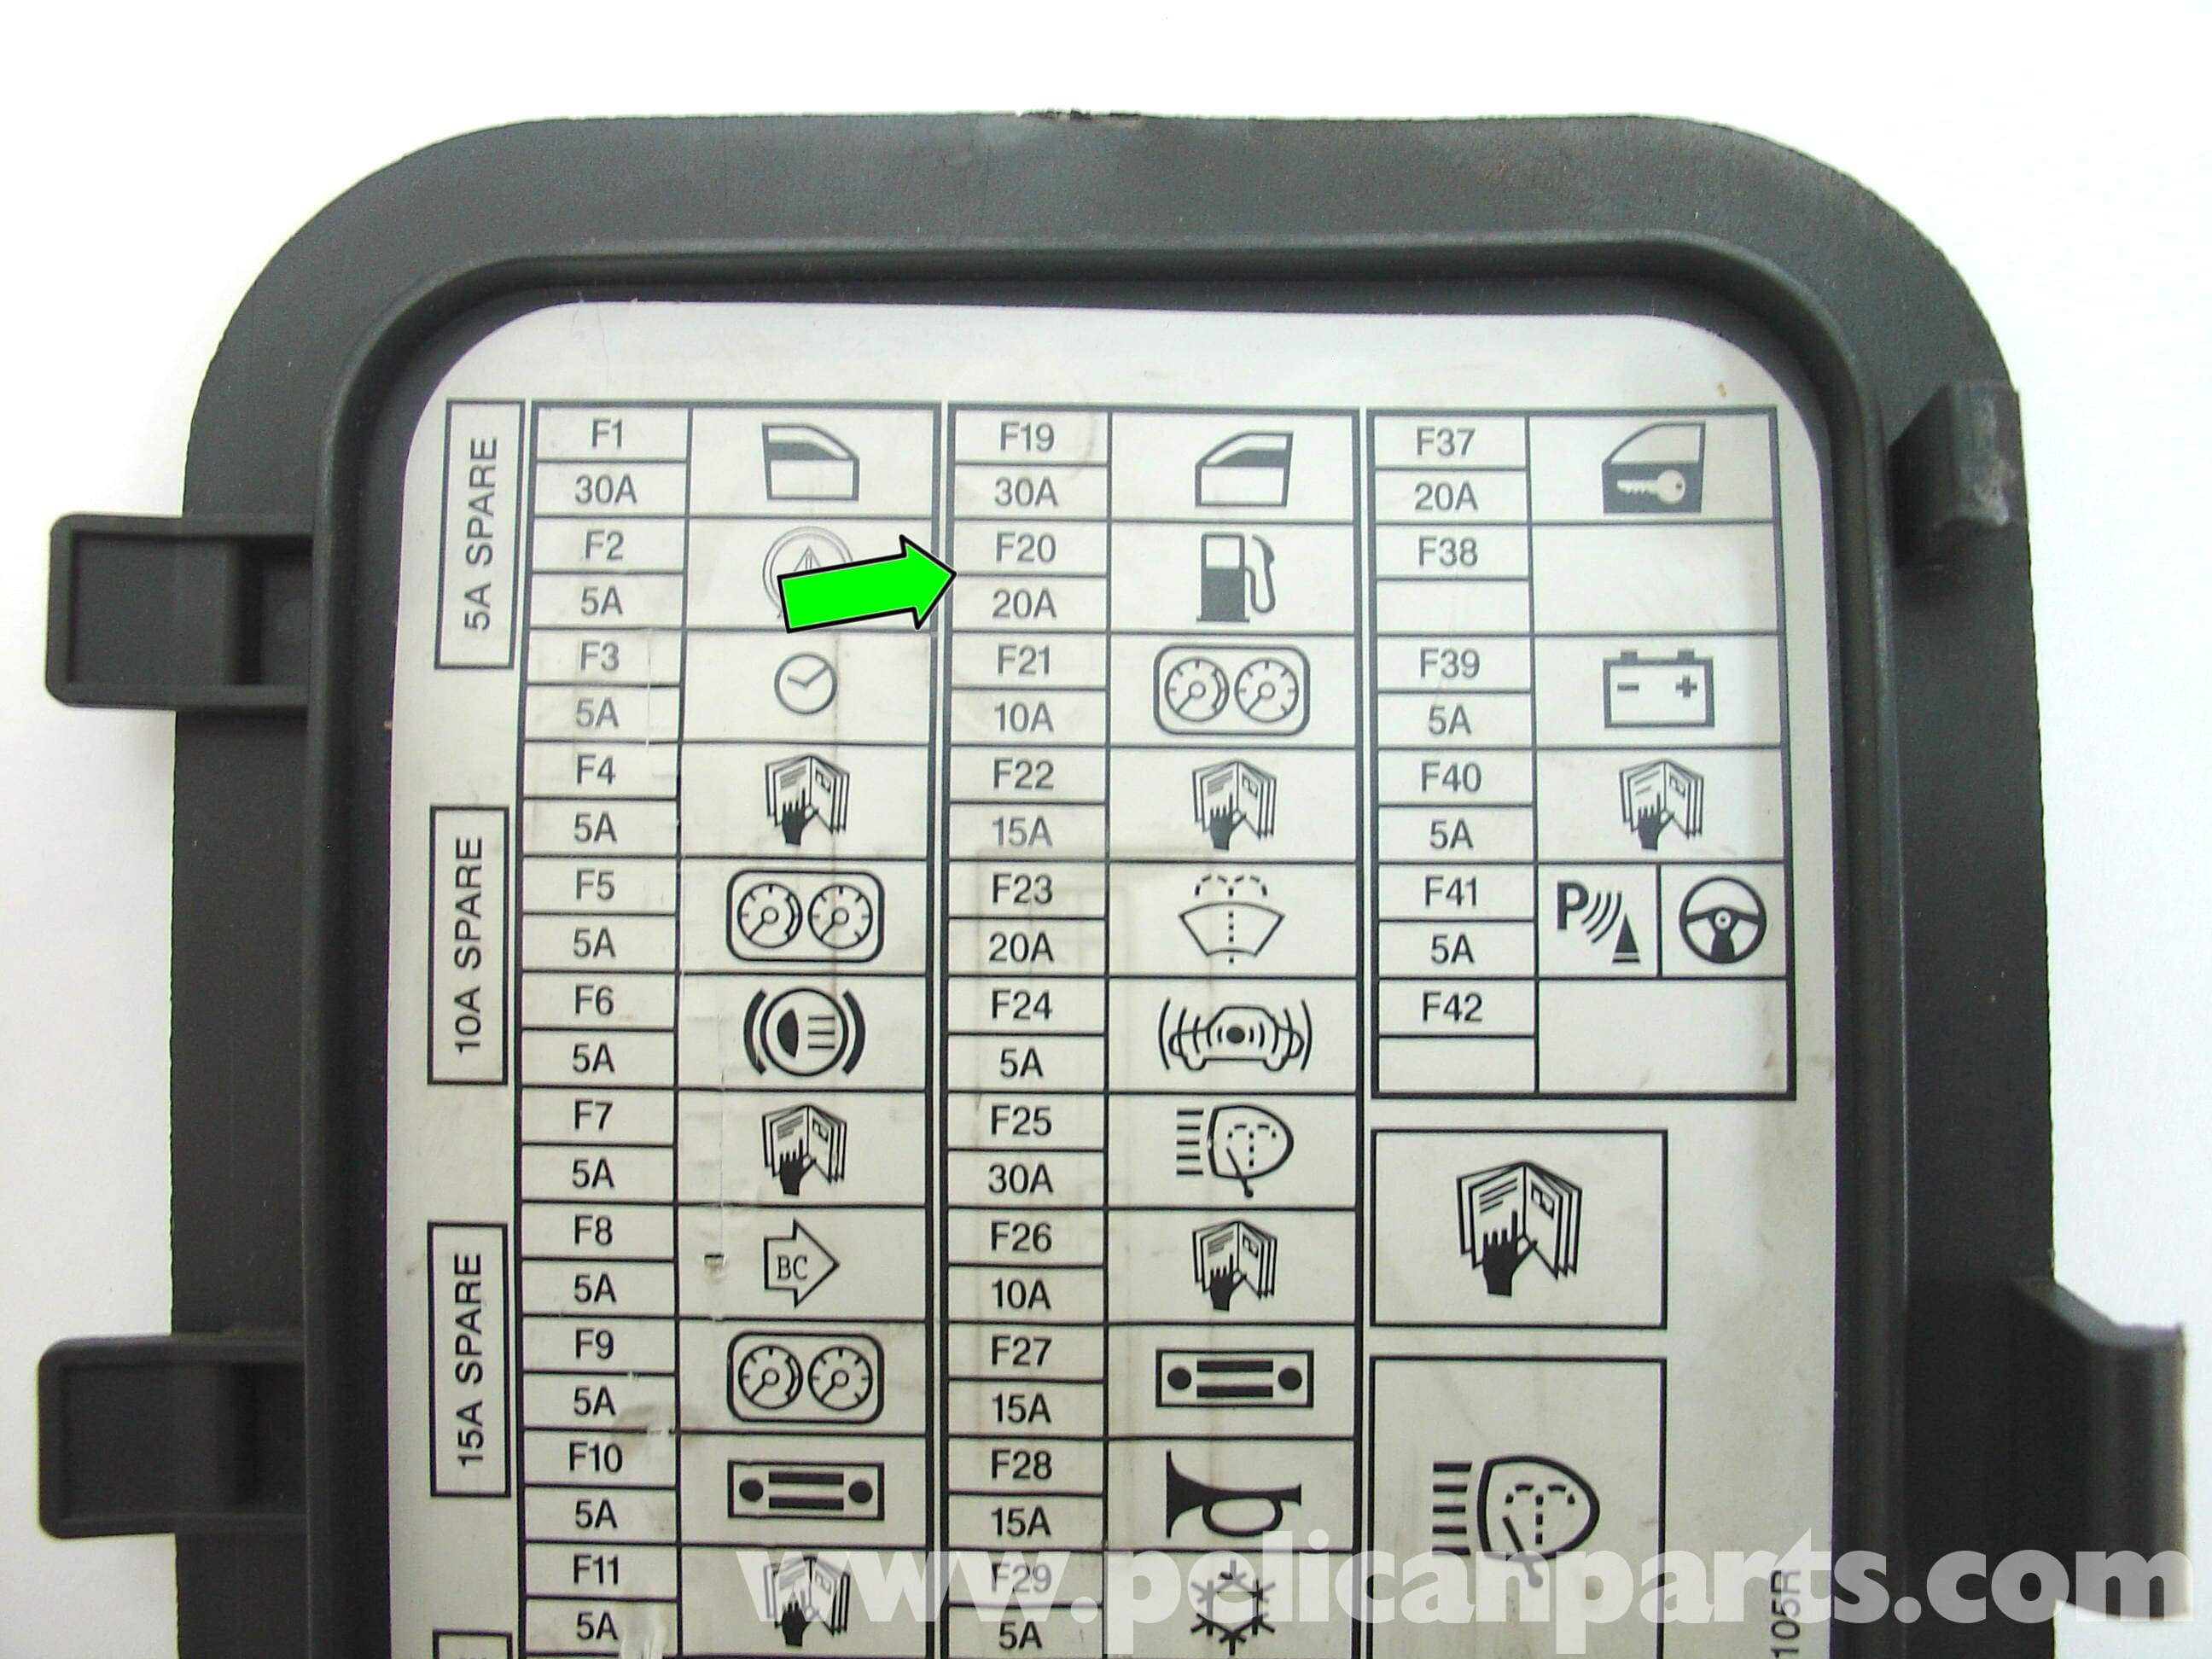 2009 Mini Cooper S Fuse Diagram Opinions About Wiring 2010 Lancer Box 28 Images Diagrams Mifinder Co 2003